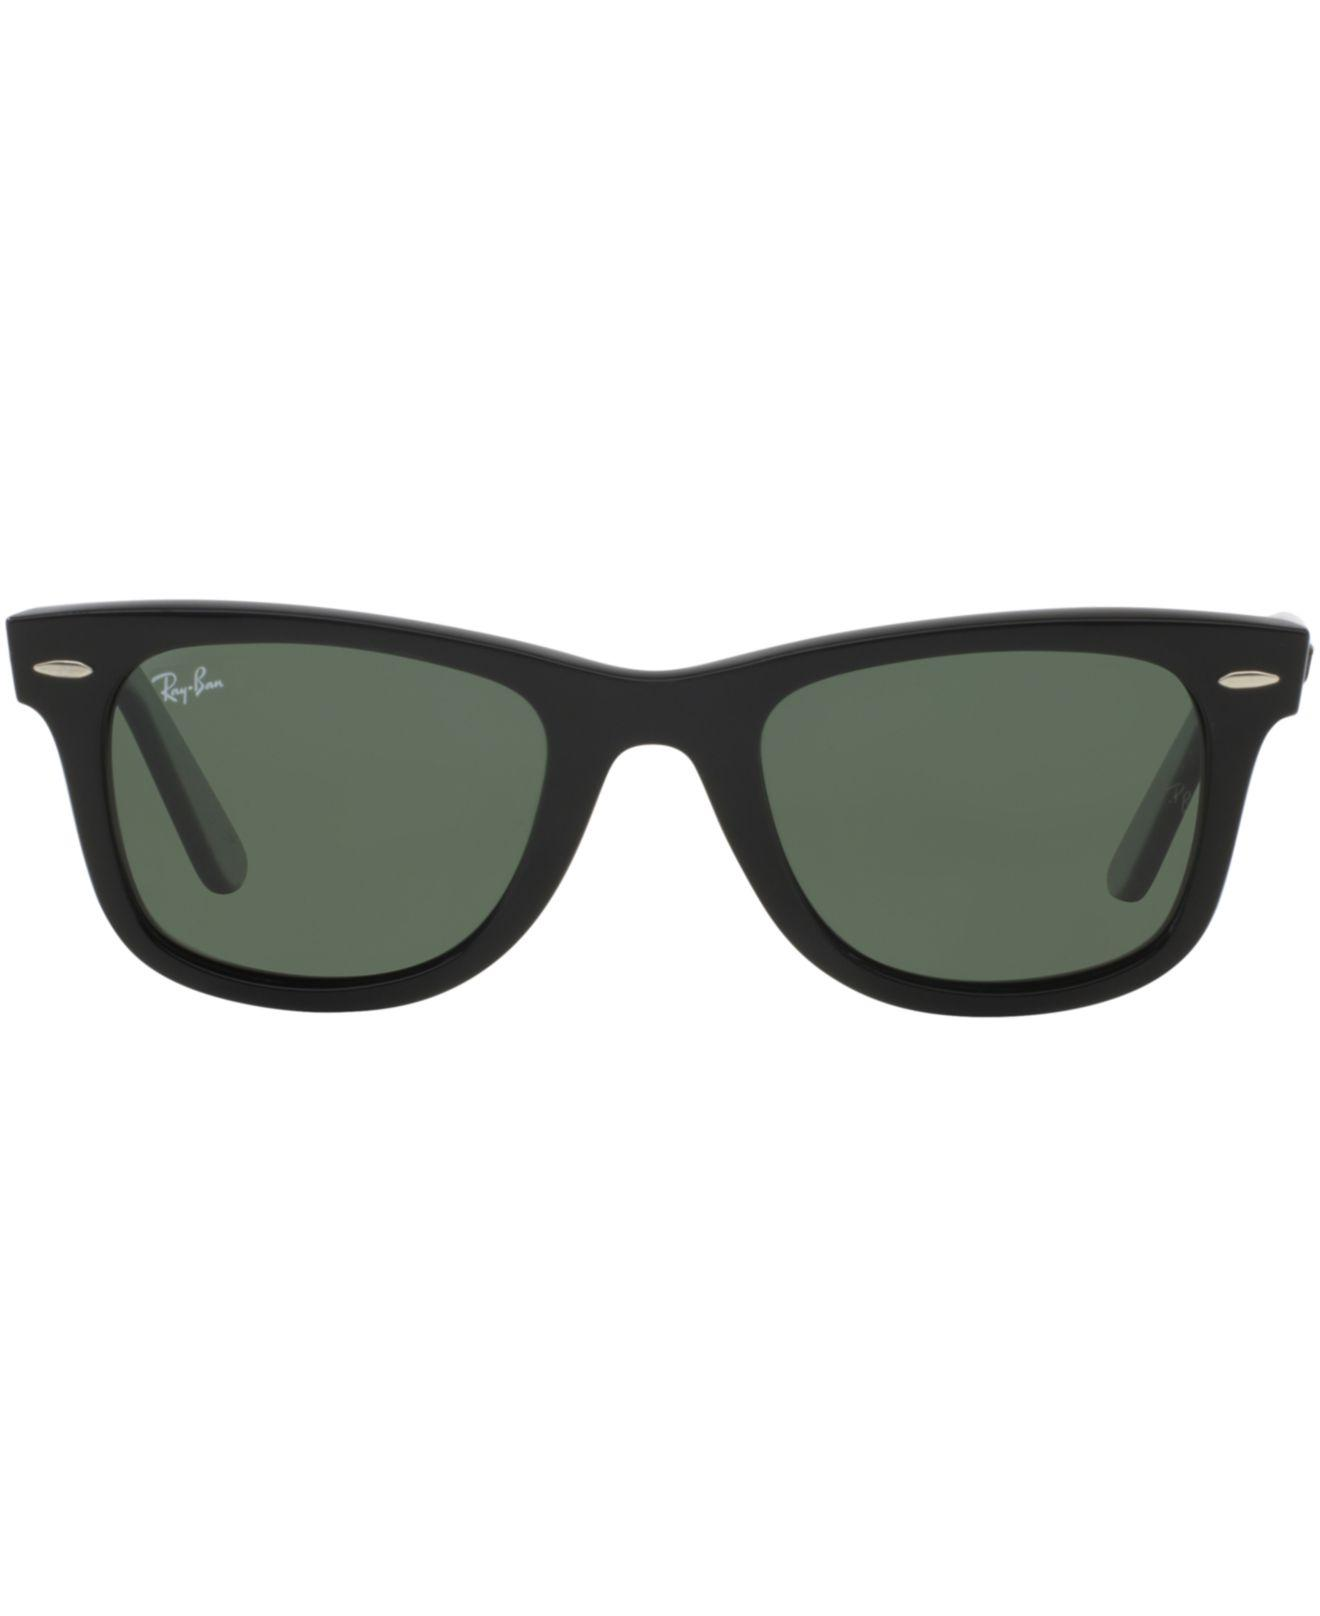 cd4a8c7ed7 Lyst - Ray-Ban Ray Ban Wayfarer Ease Black Sunglasses in Black for Men -  Save 9%